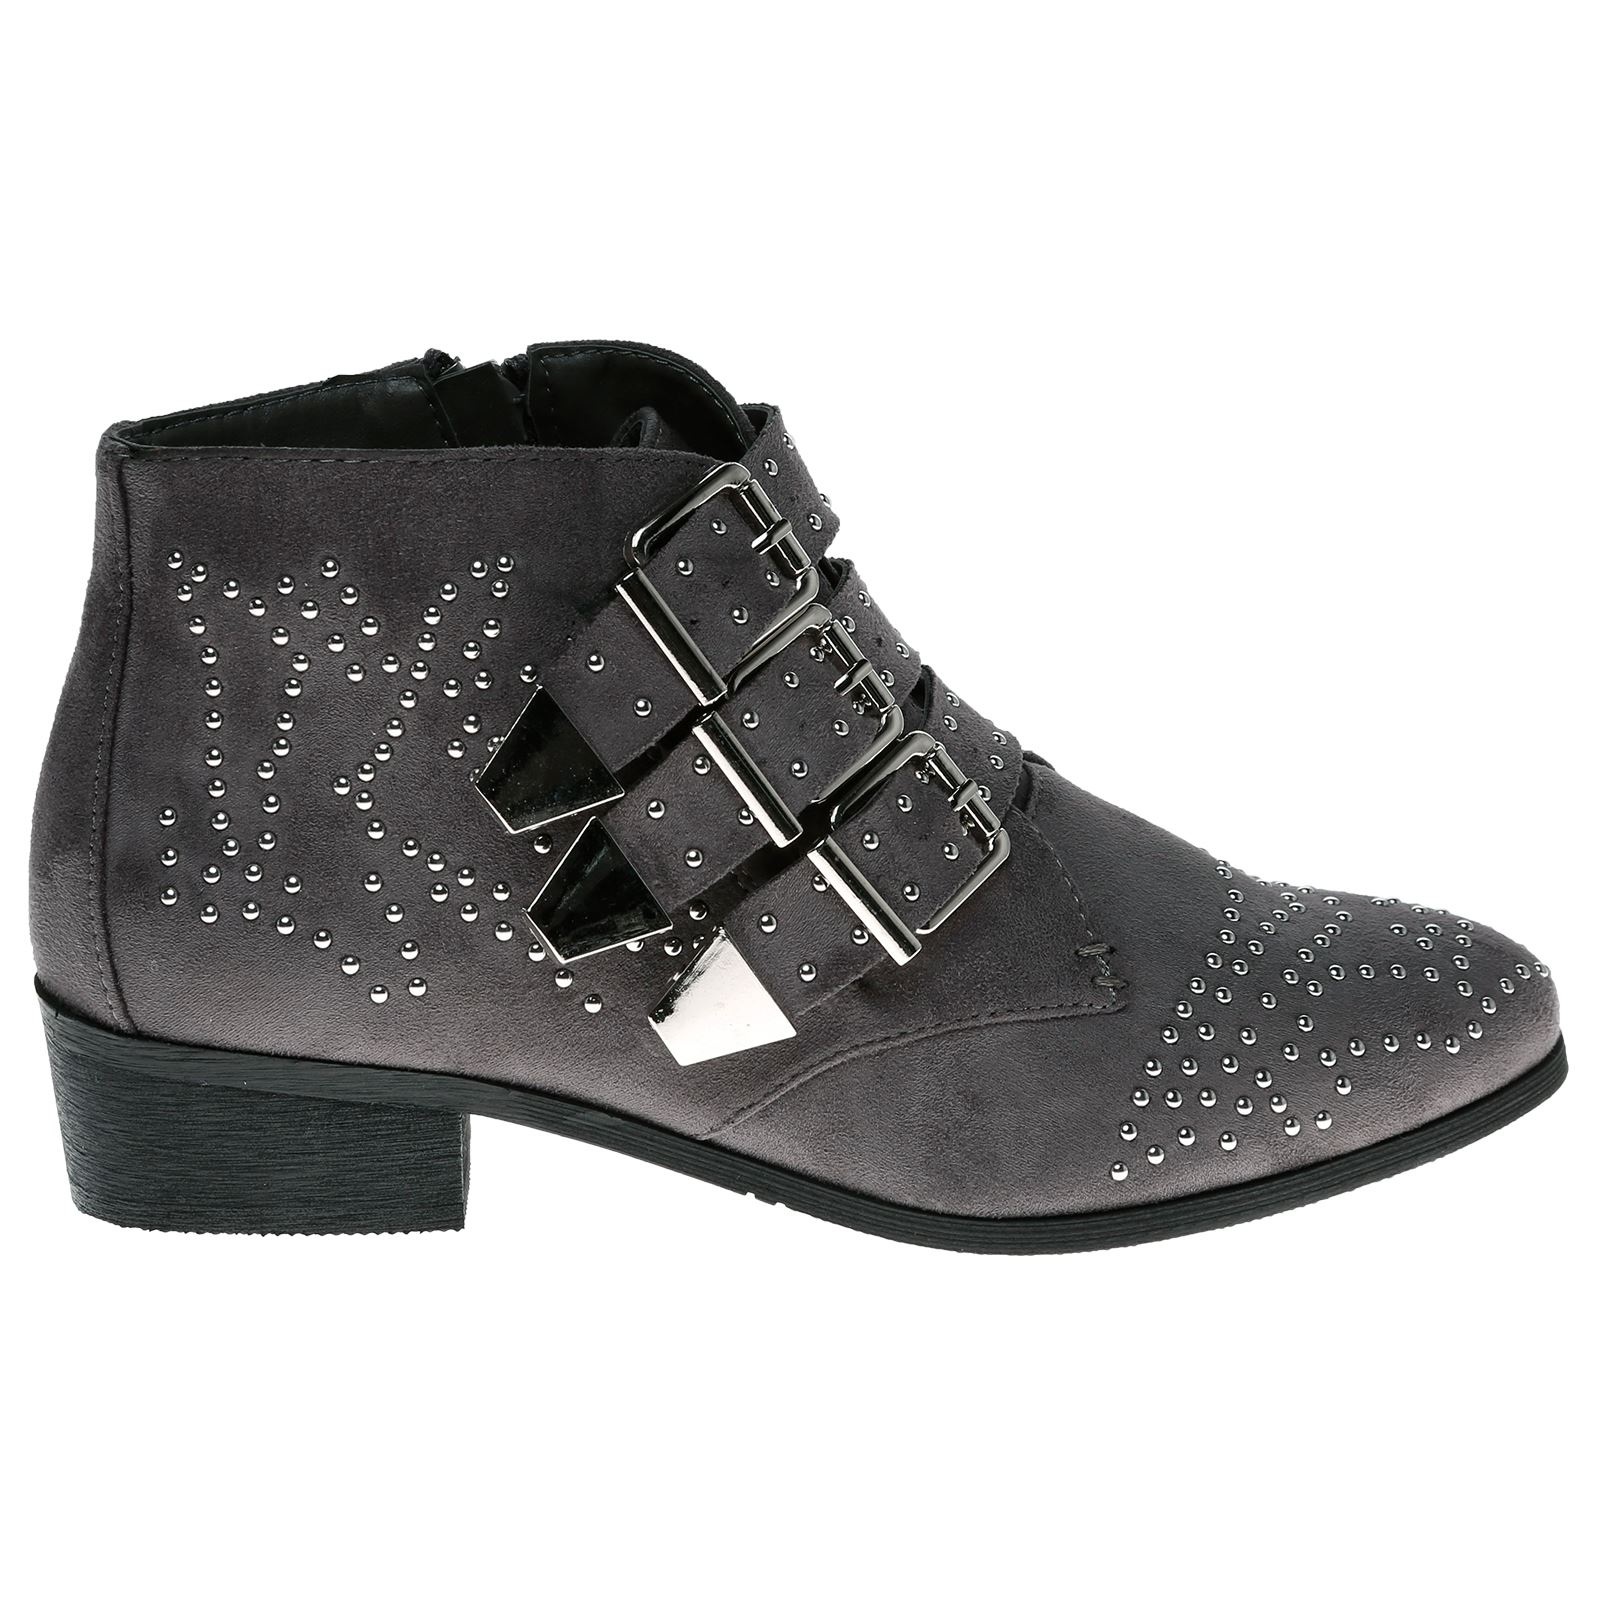 Liv-Womens-Flats-Low-Heels-Buckle-Strappy-Biker-Ankle-Boots-Ladies-Shoes-Studded thumbnail 19